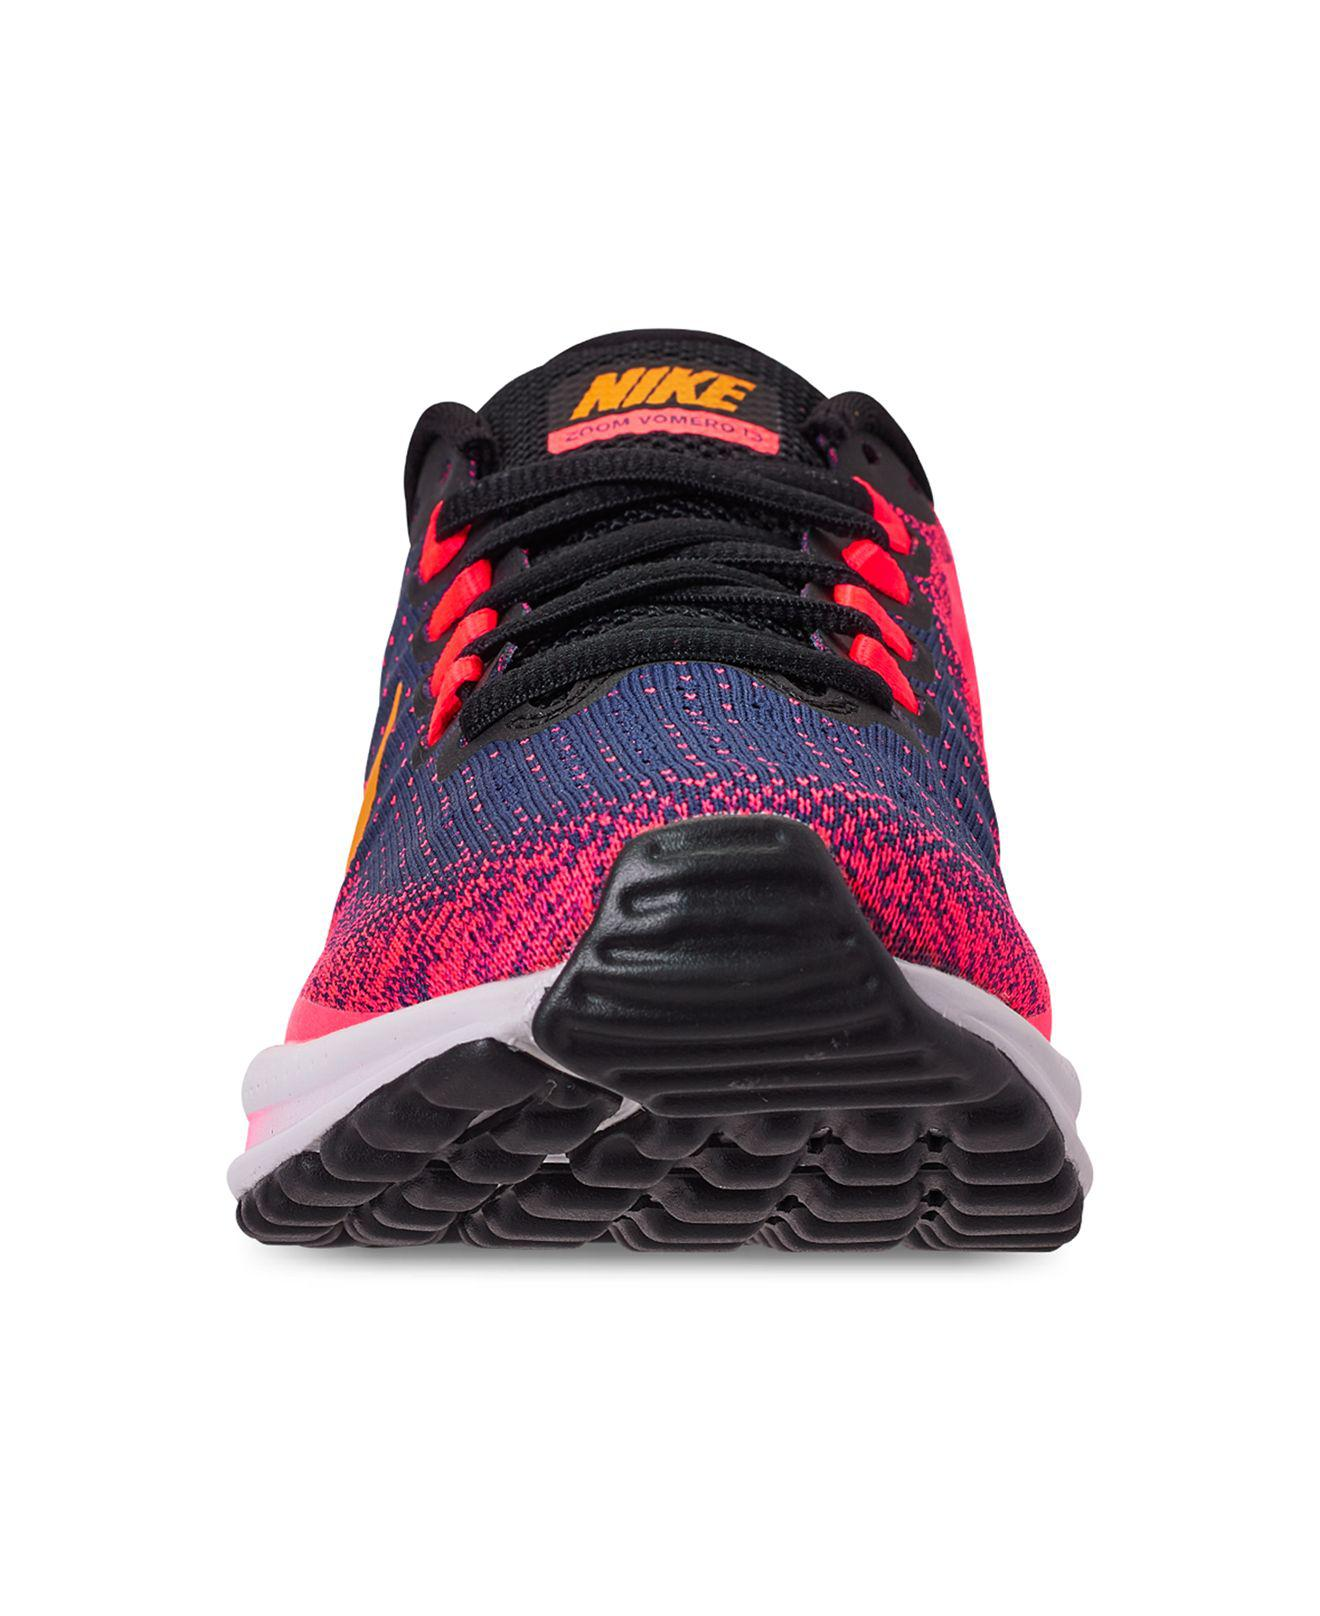 Nike - Multicolor Air Zoom Vomero 13 Running Sneakers From Finish Line -  Lyst. View fullscreen 0b9819d98